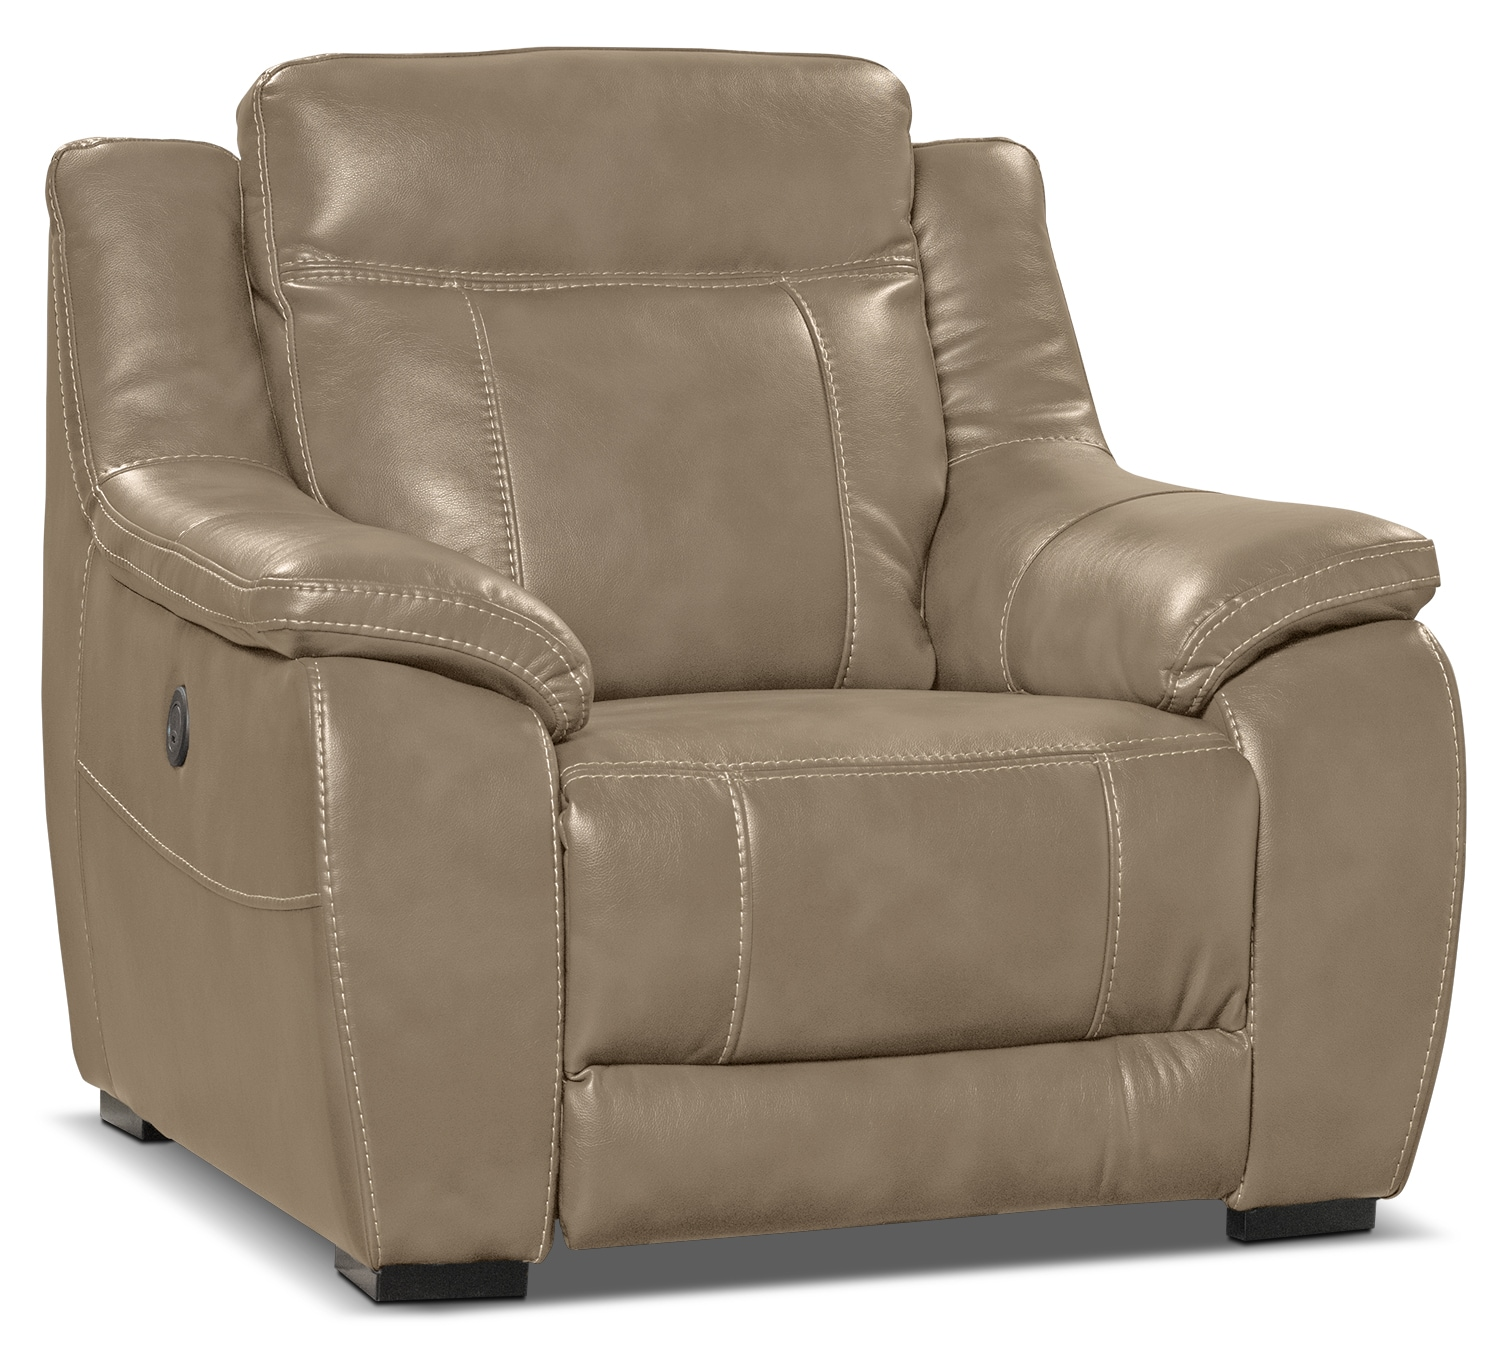 Novo Leather-Look Fabric Power Reclining Chair – Taupe